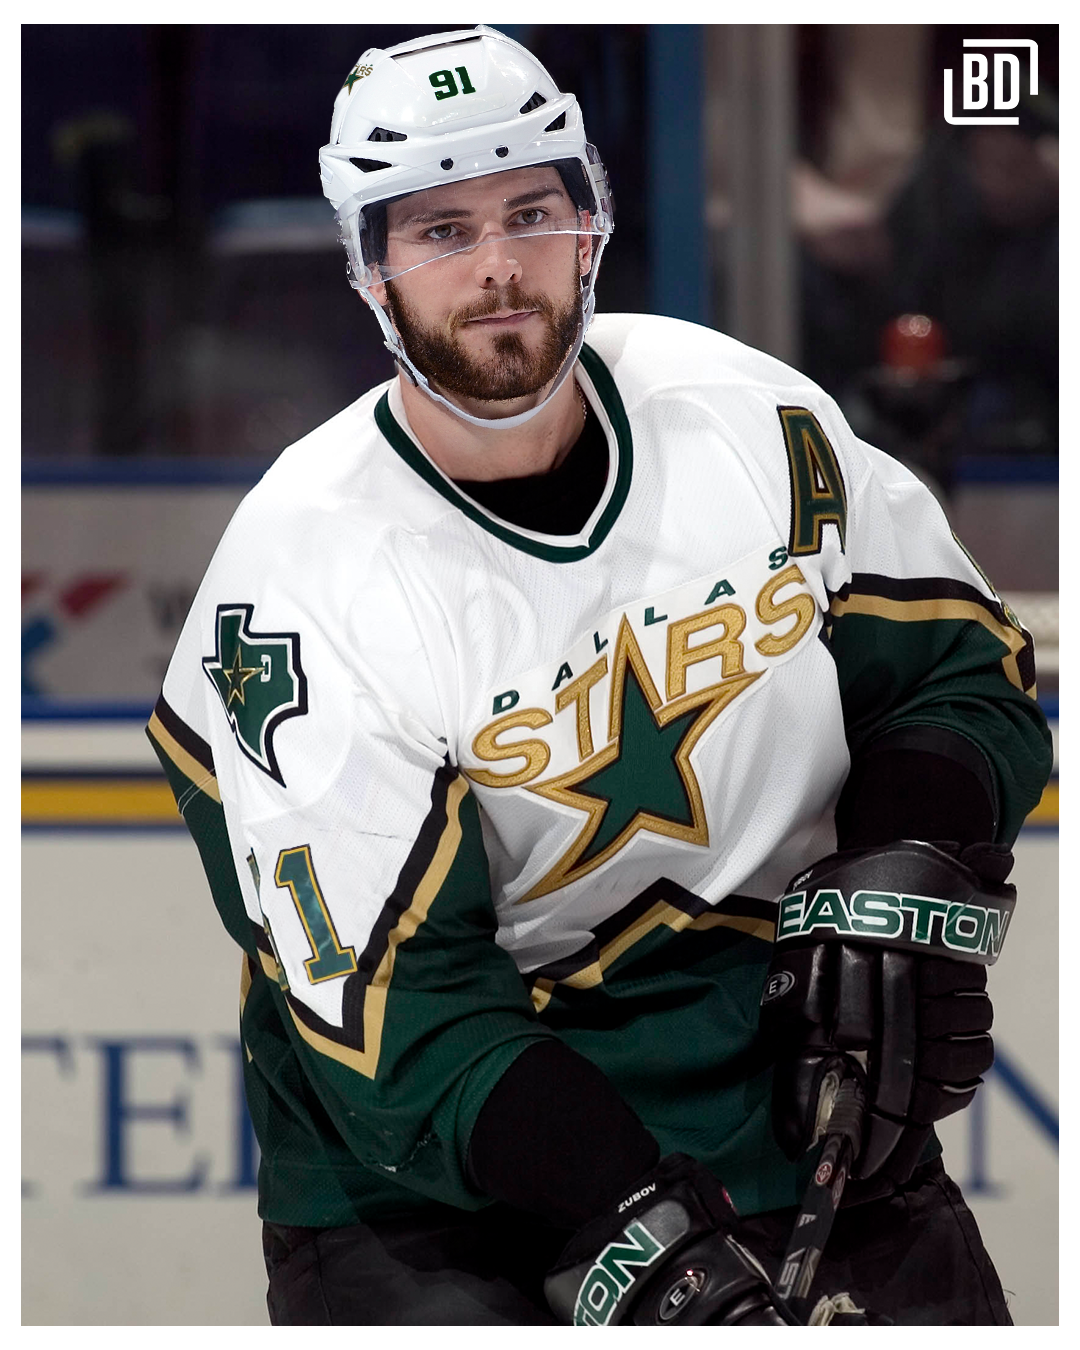 The Dallas Stars  decision to change their logo and jerseys a few years ago  took a lot of hockey fans by surprise. Sure dd8e36c72